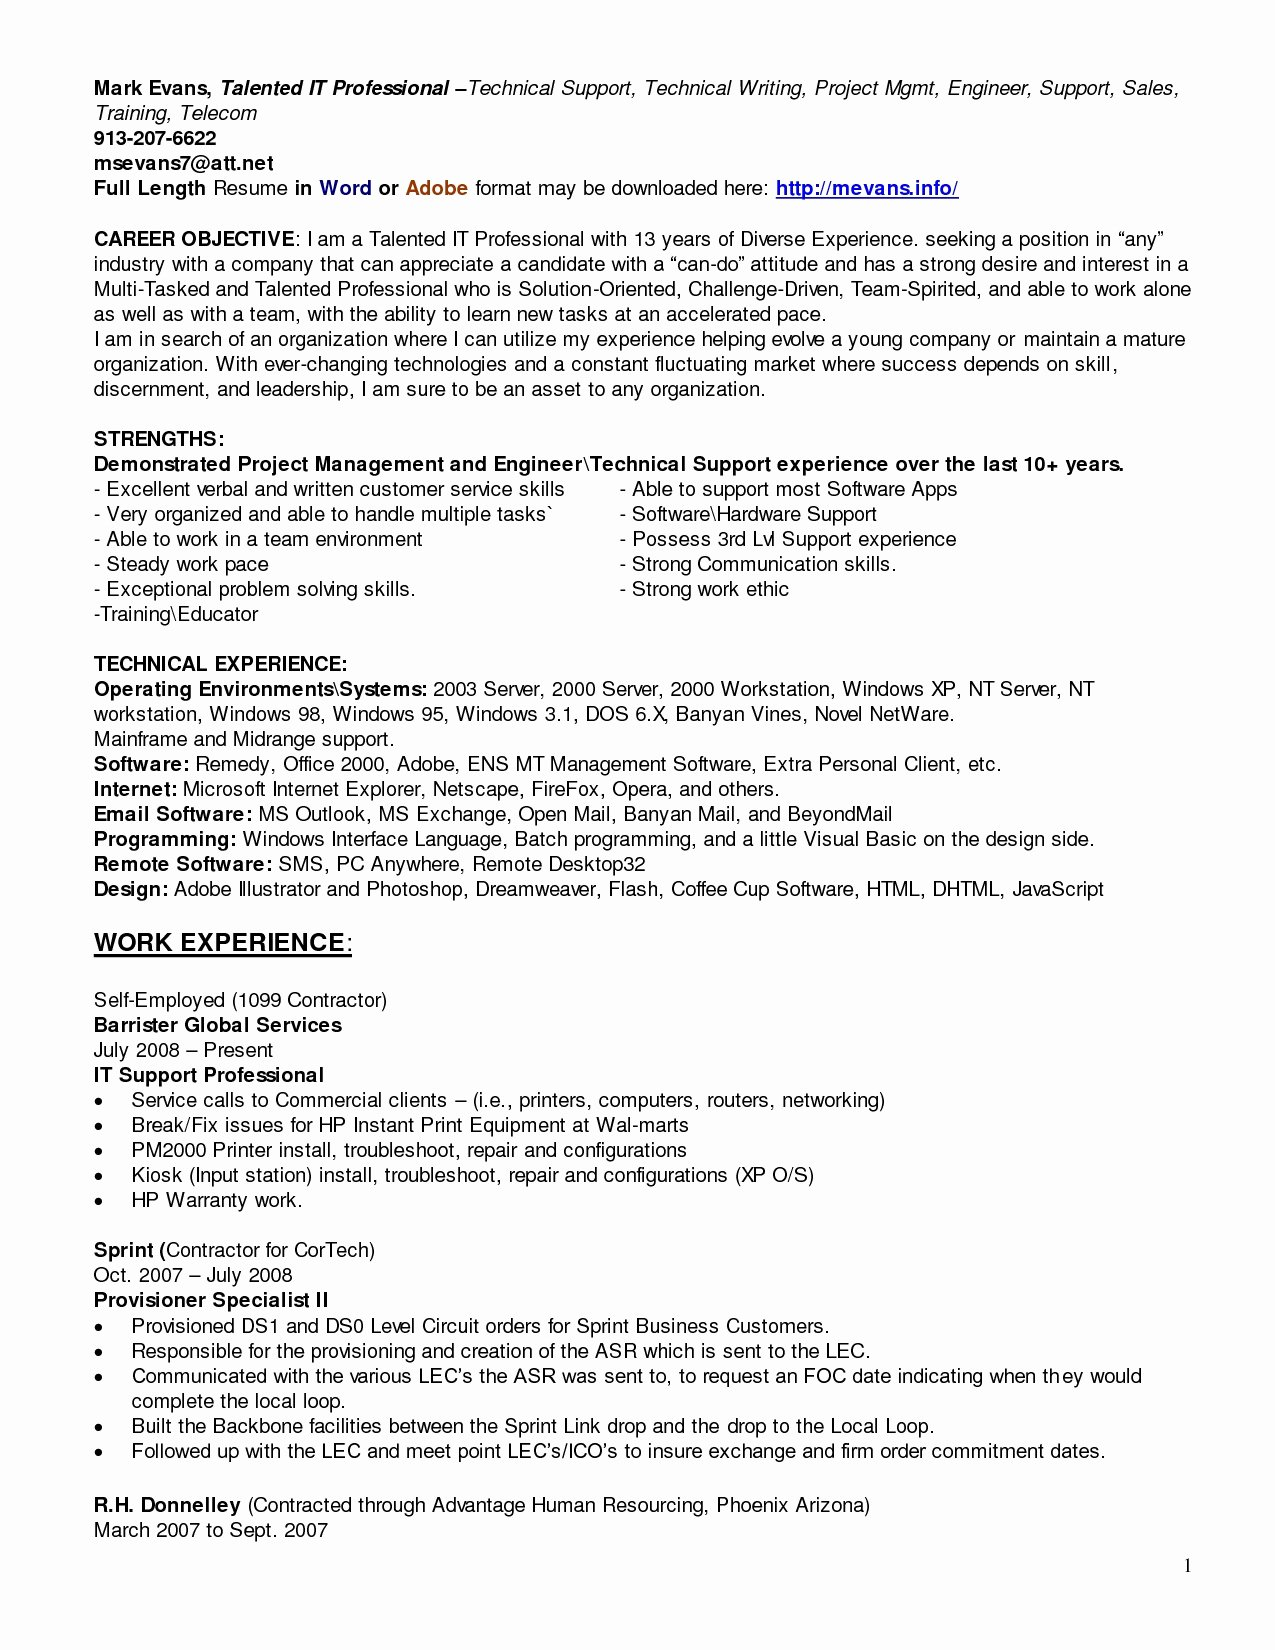 Technical Writer Resume Sample Unique Technical Writers Resume Examples Sample Resume Technical Writer